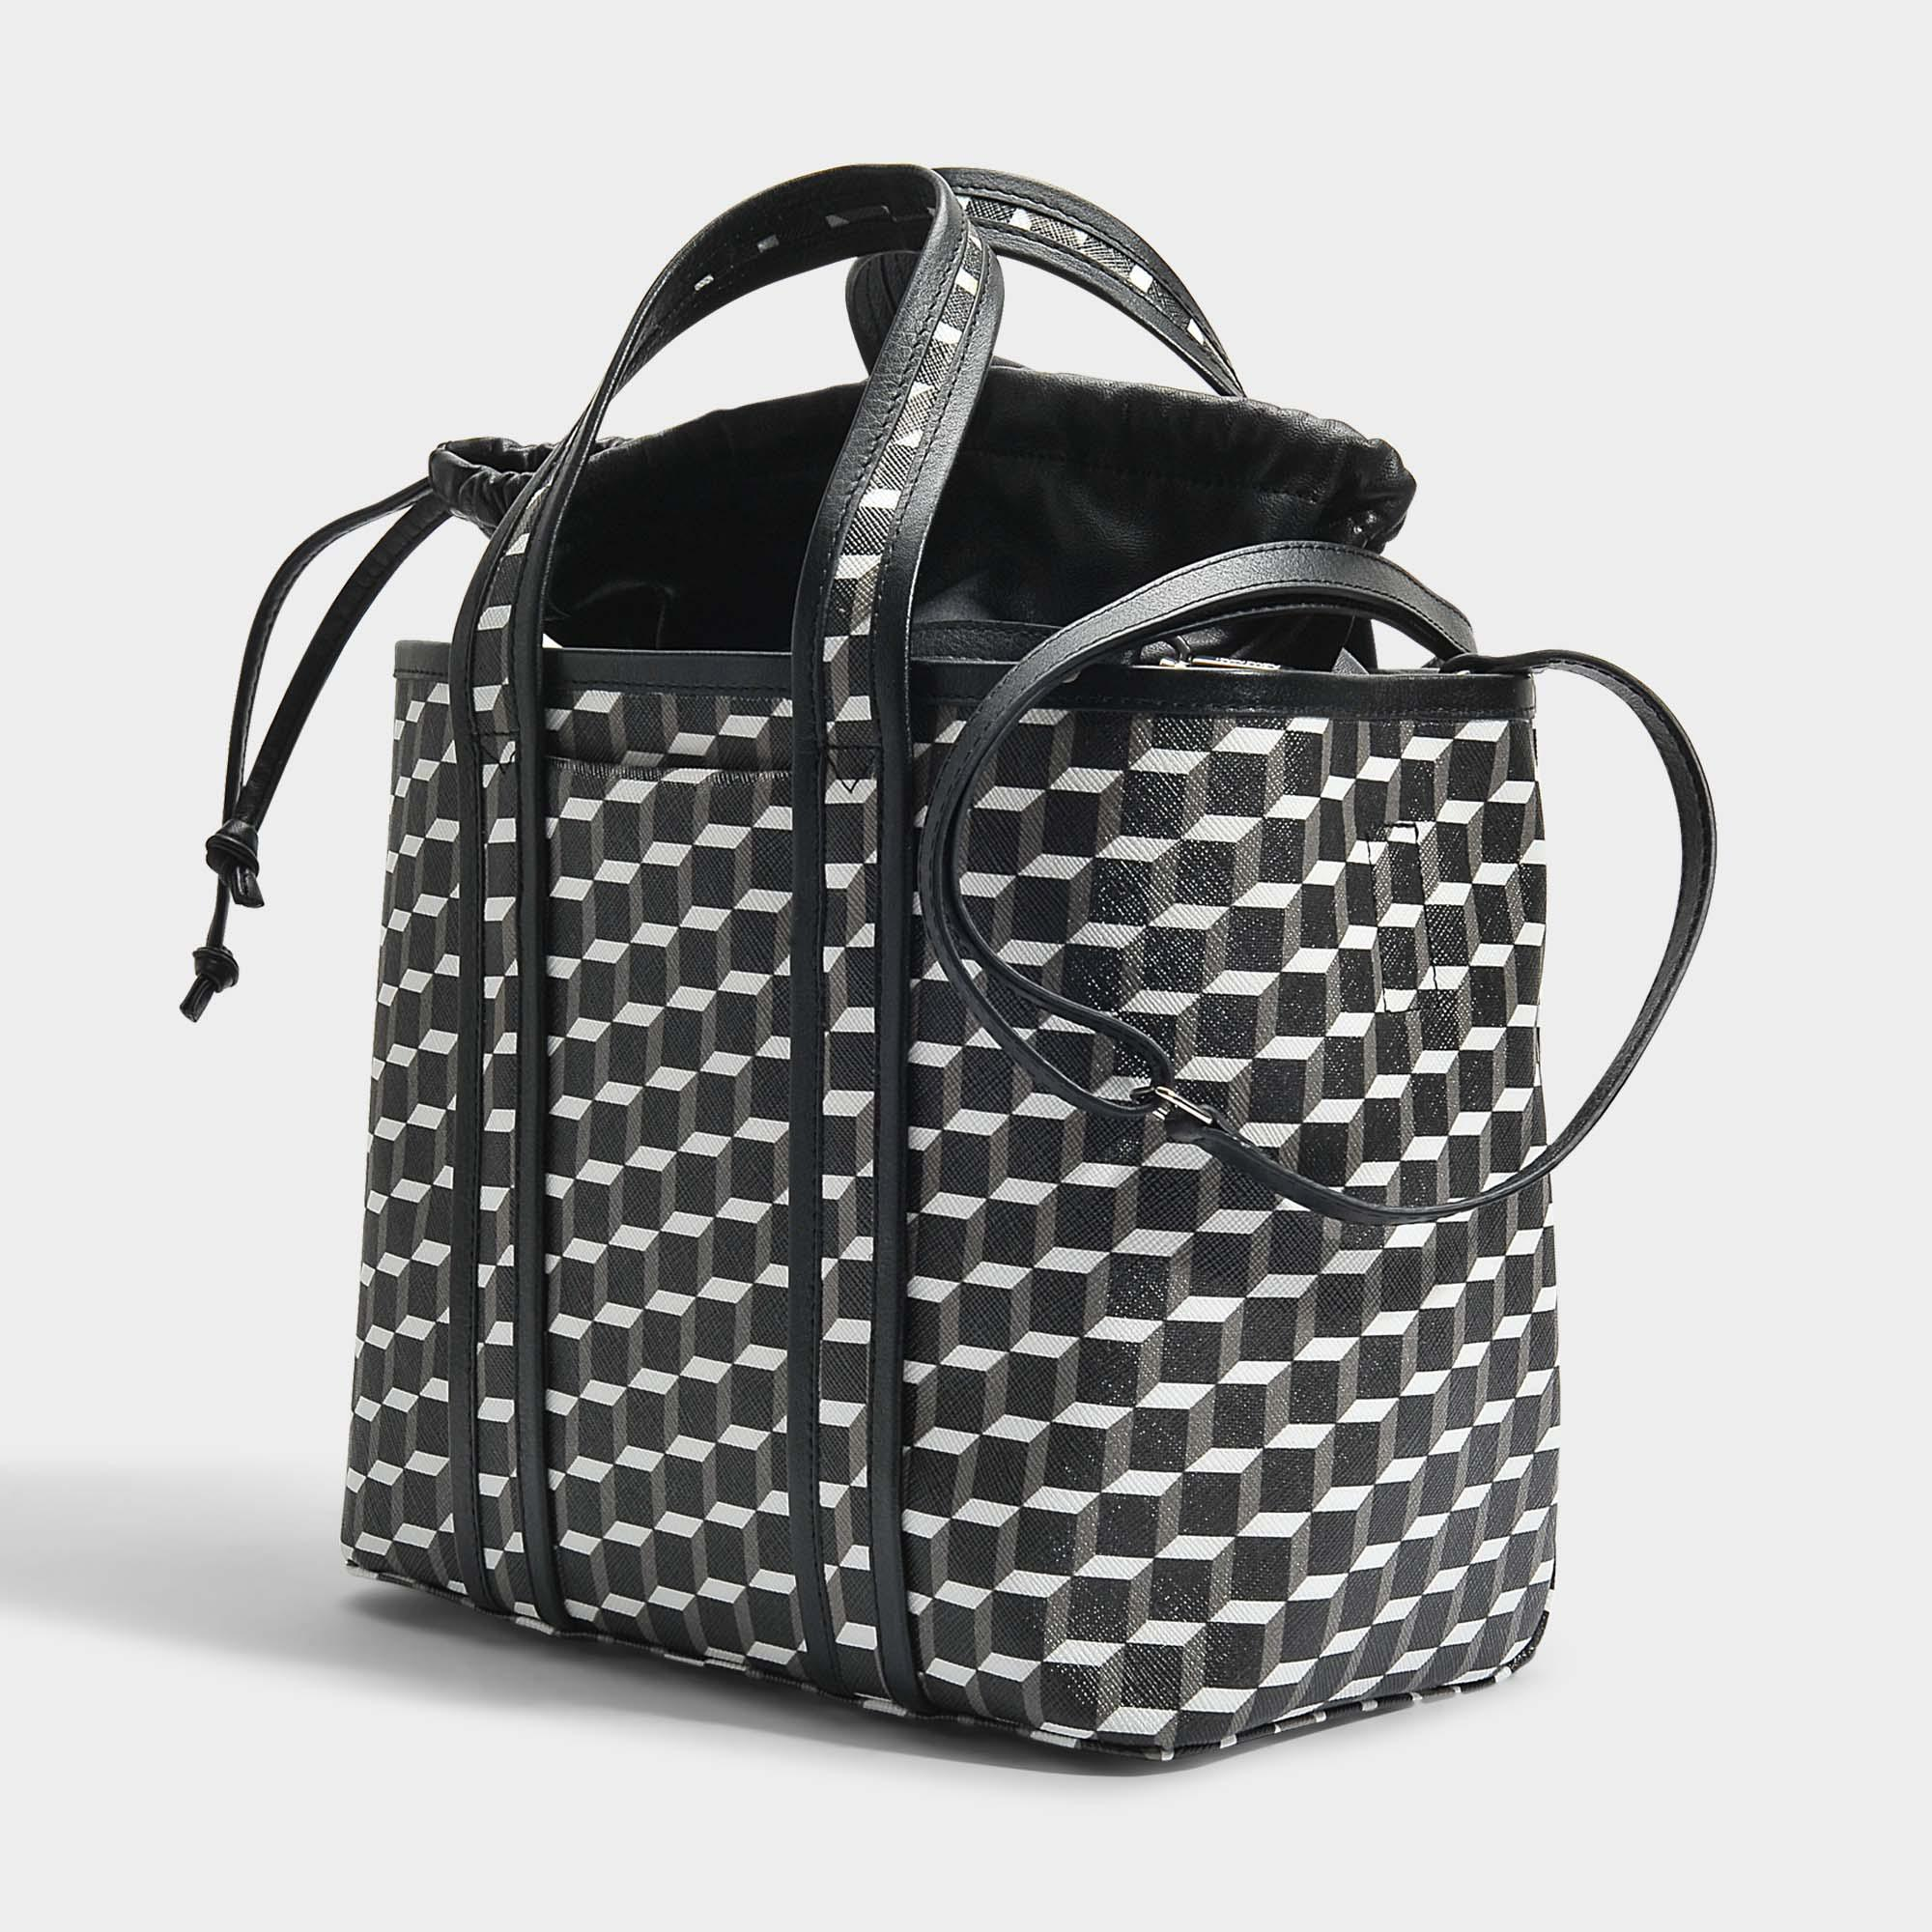 Tote Bag in Black and White Cube Canvas and Calfskin Pierre Hardy Nhxkuwly